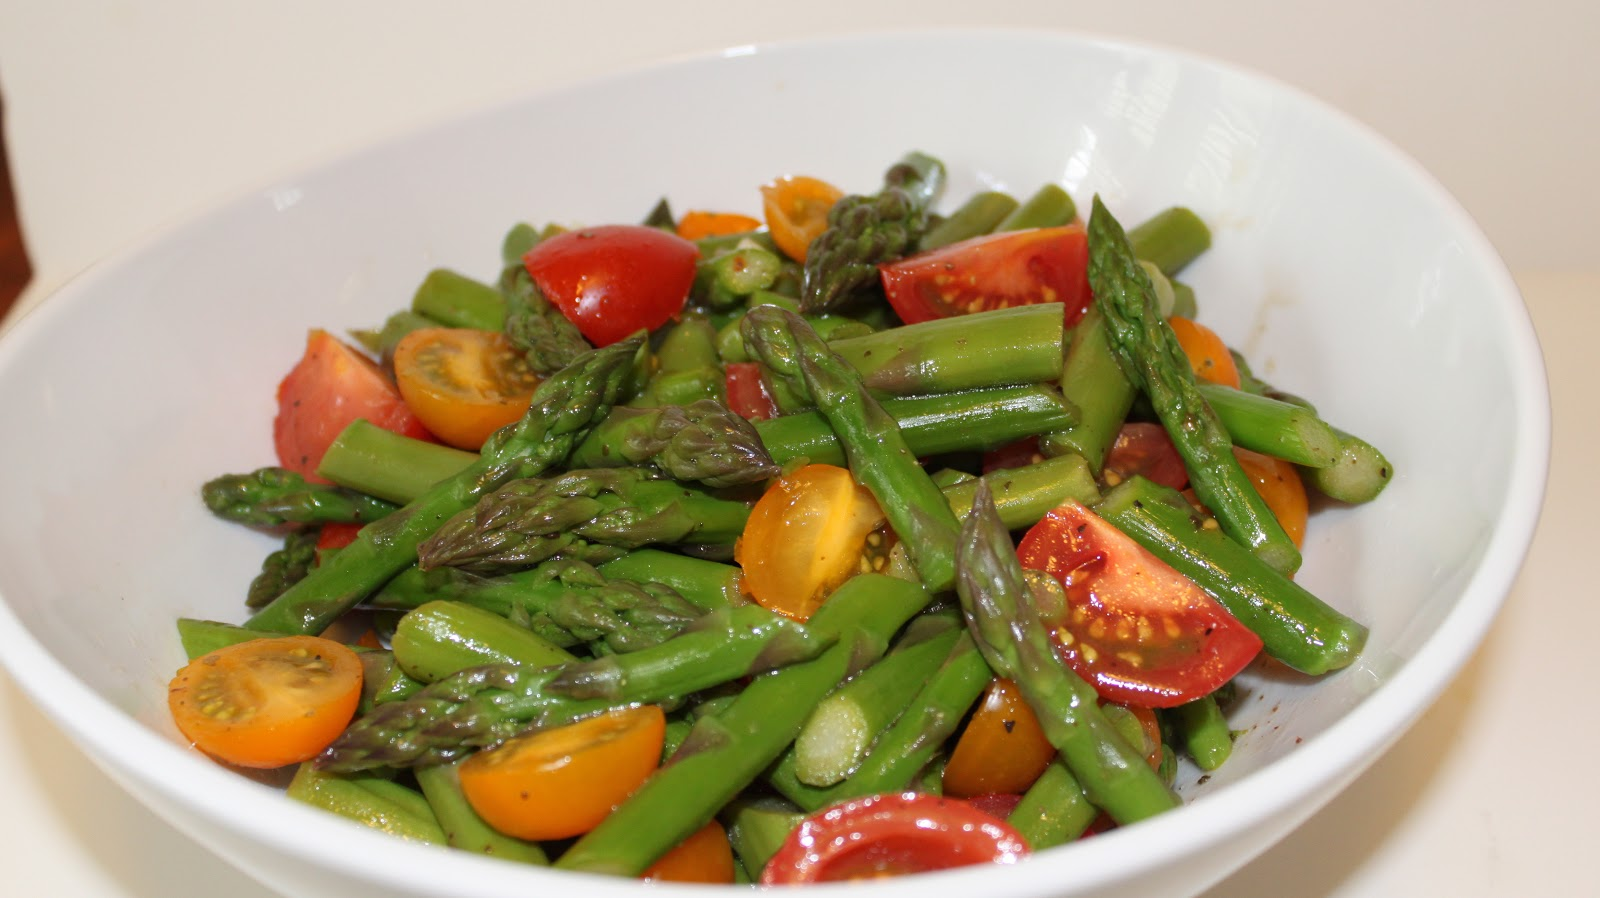 FROM A WRITER'S KITCHEN: Asparagus Salad